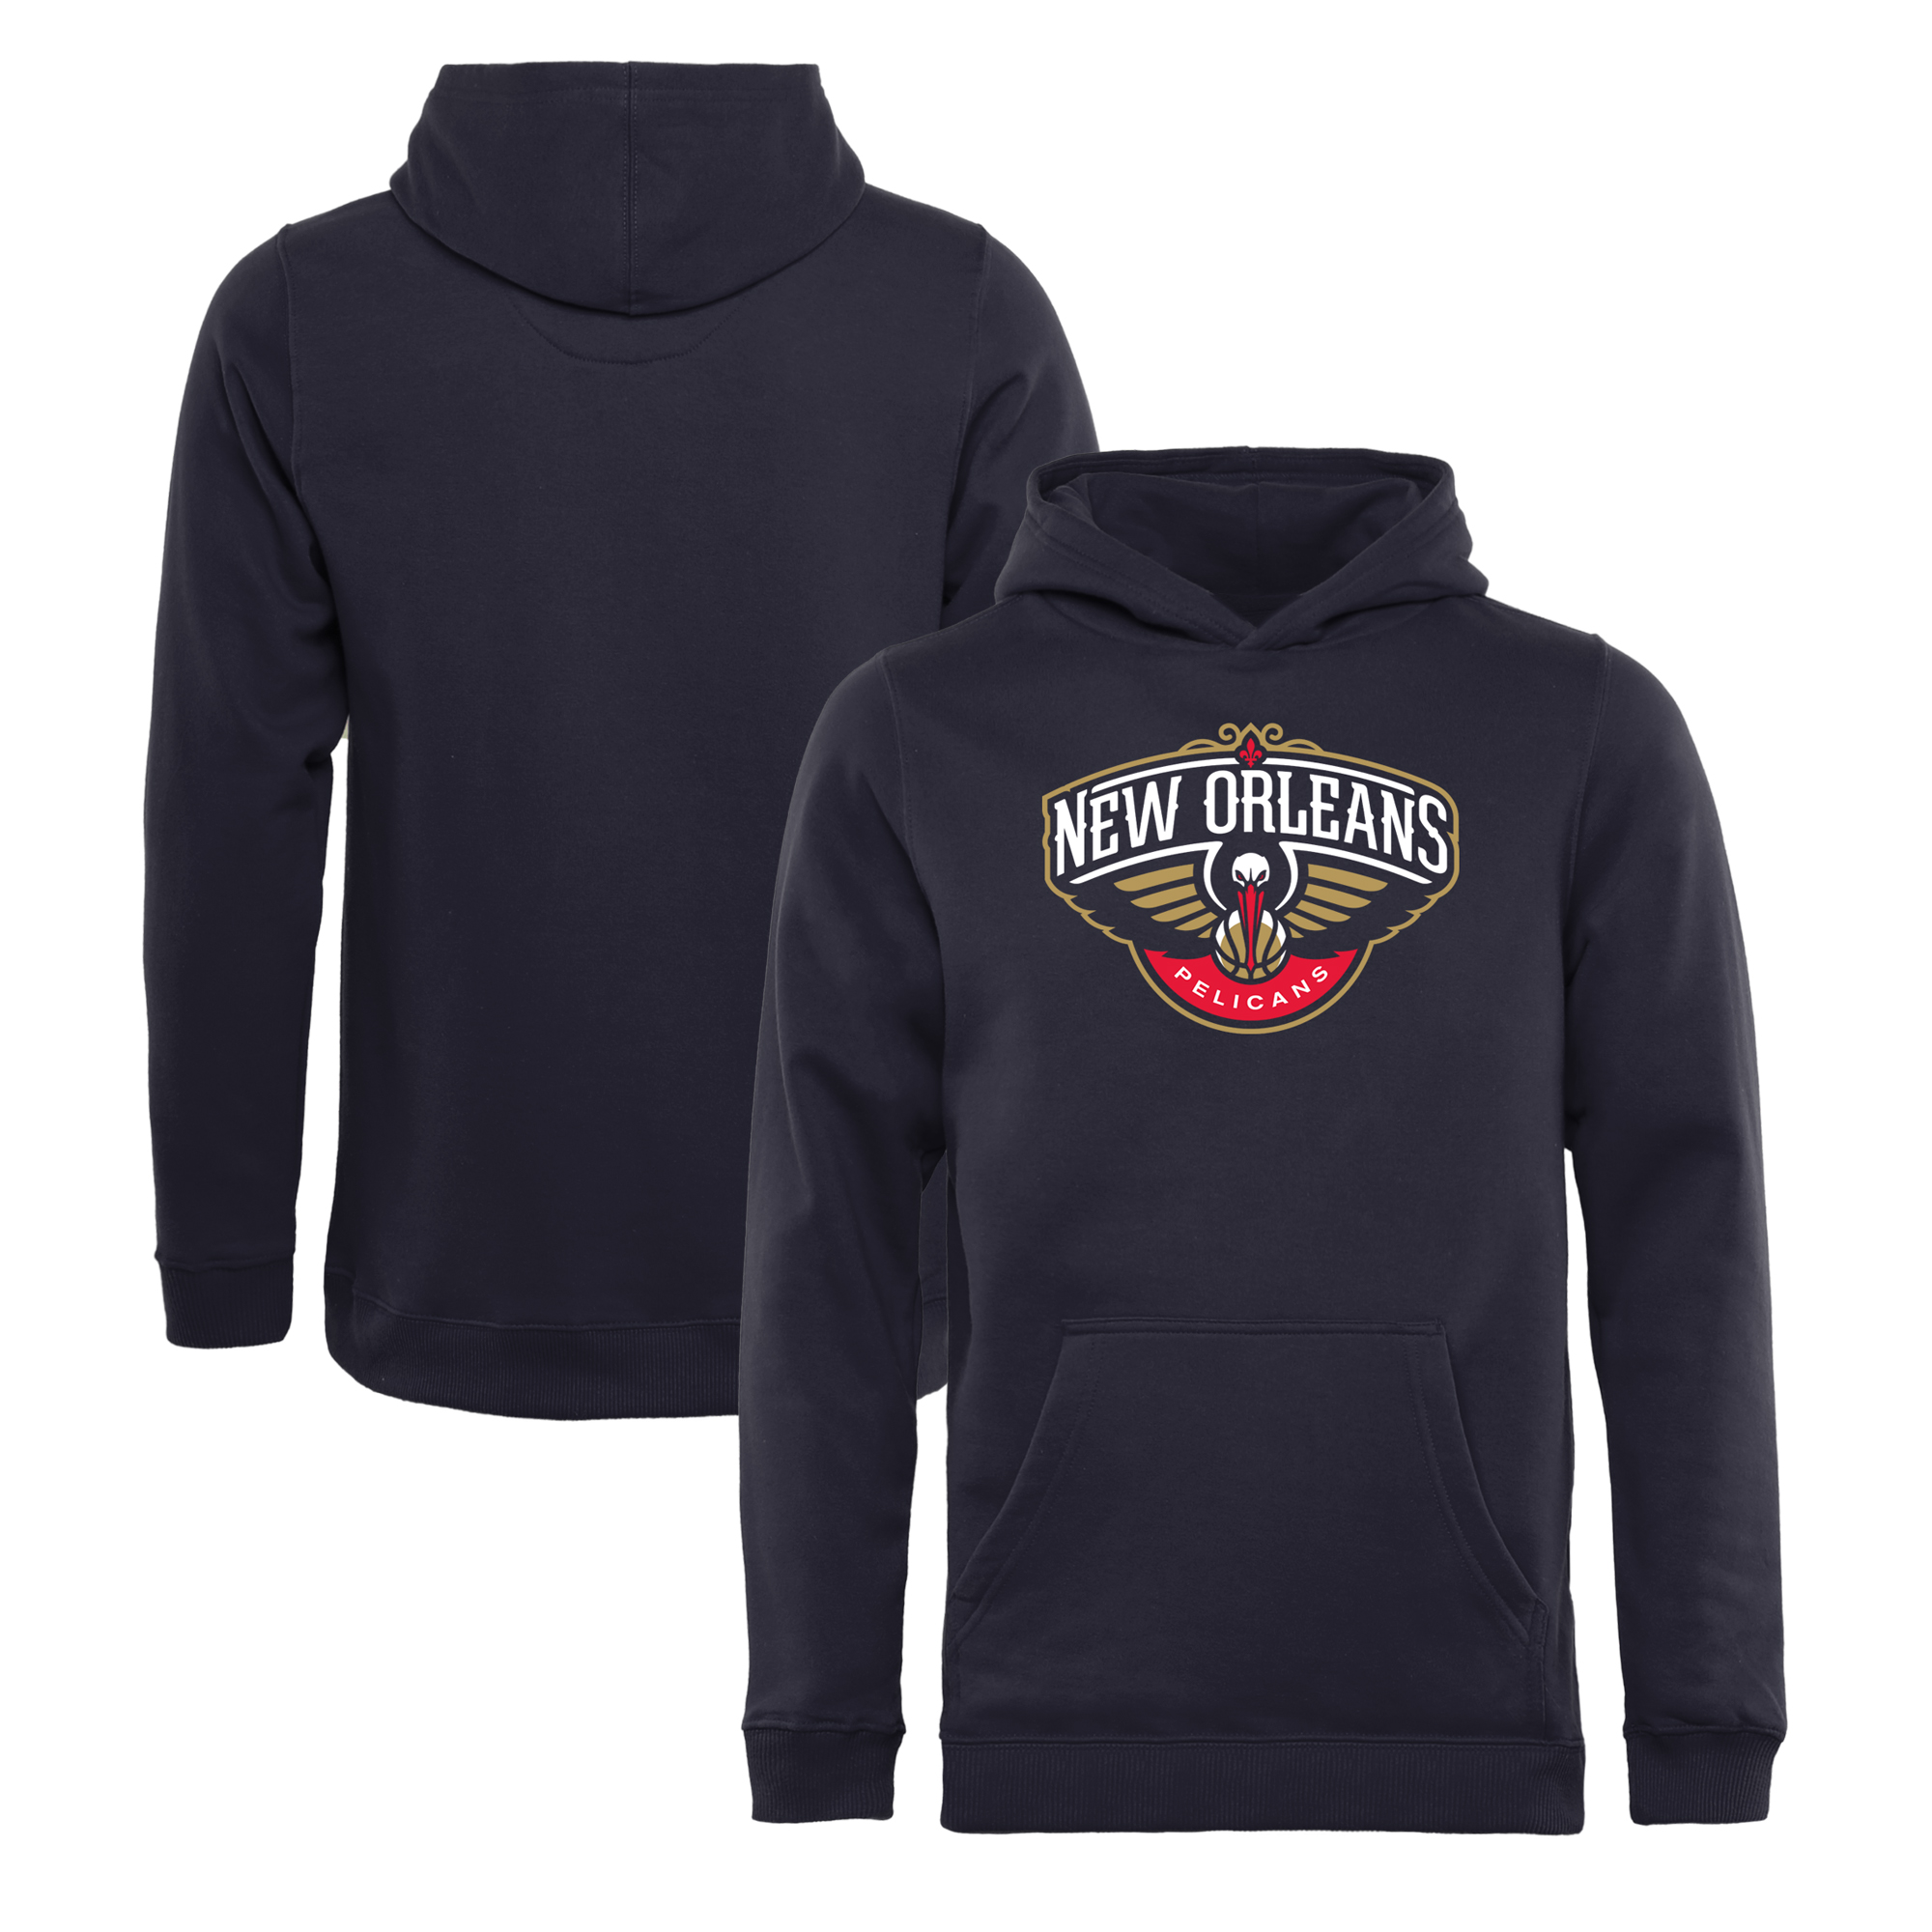 New Orleans Pelicans Fanatics Branded Youth Primary Logo Pullover Hoodie - Navy